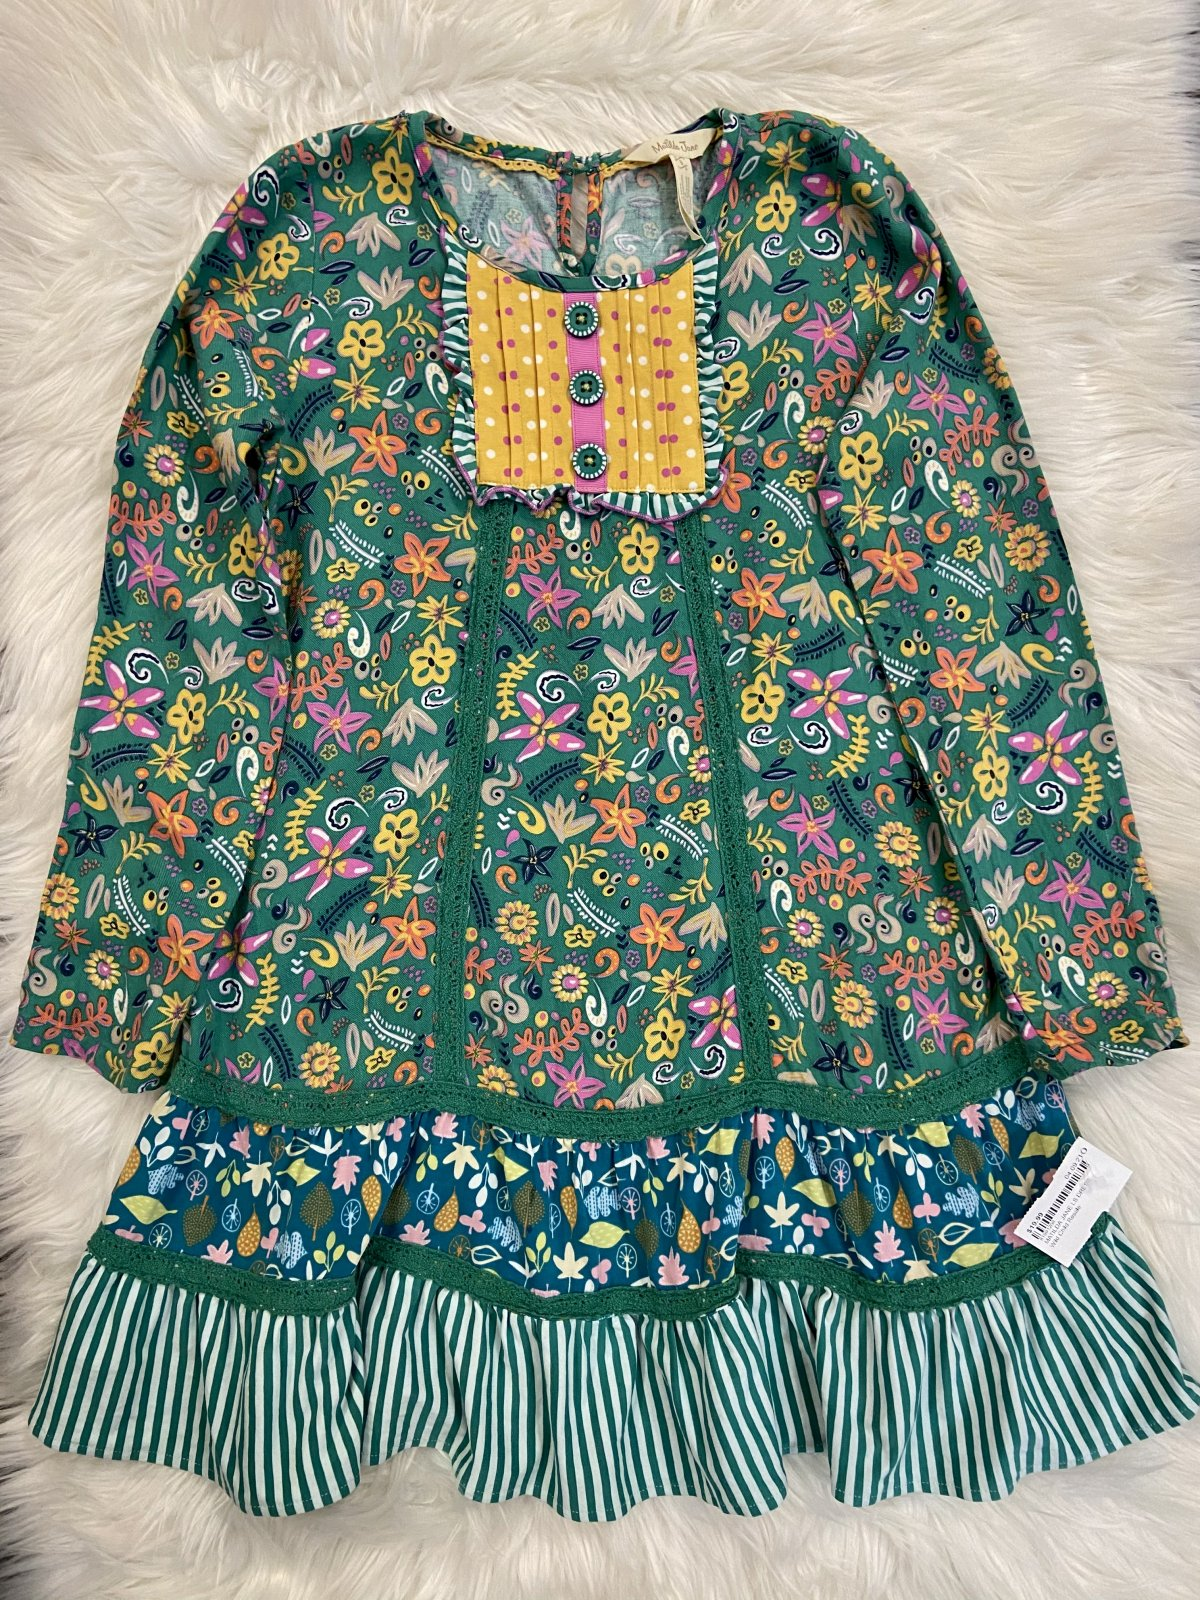 MATILDA JANE LS DRESS MULTI GREEN SIZE 8